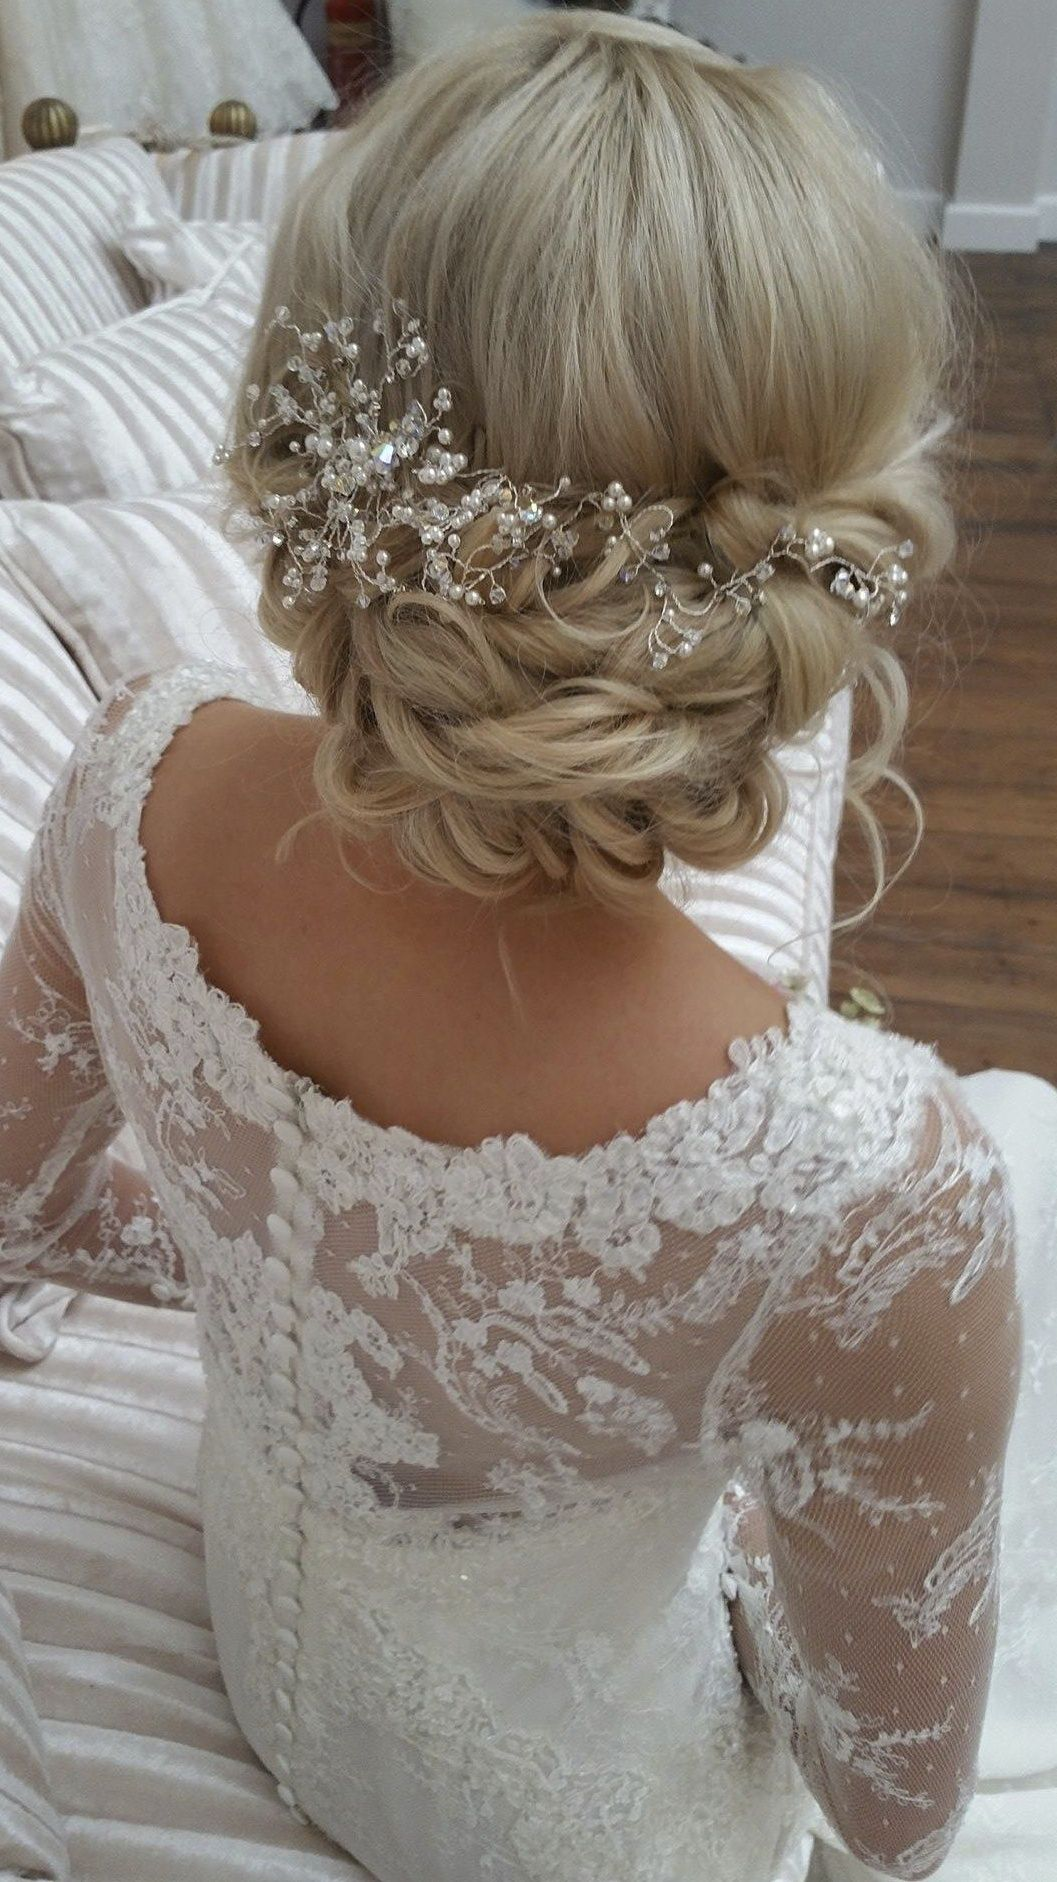 pin ni lee sa messy | celebrity wedding hair, bridal hair